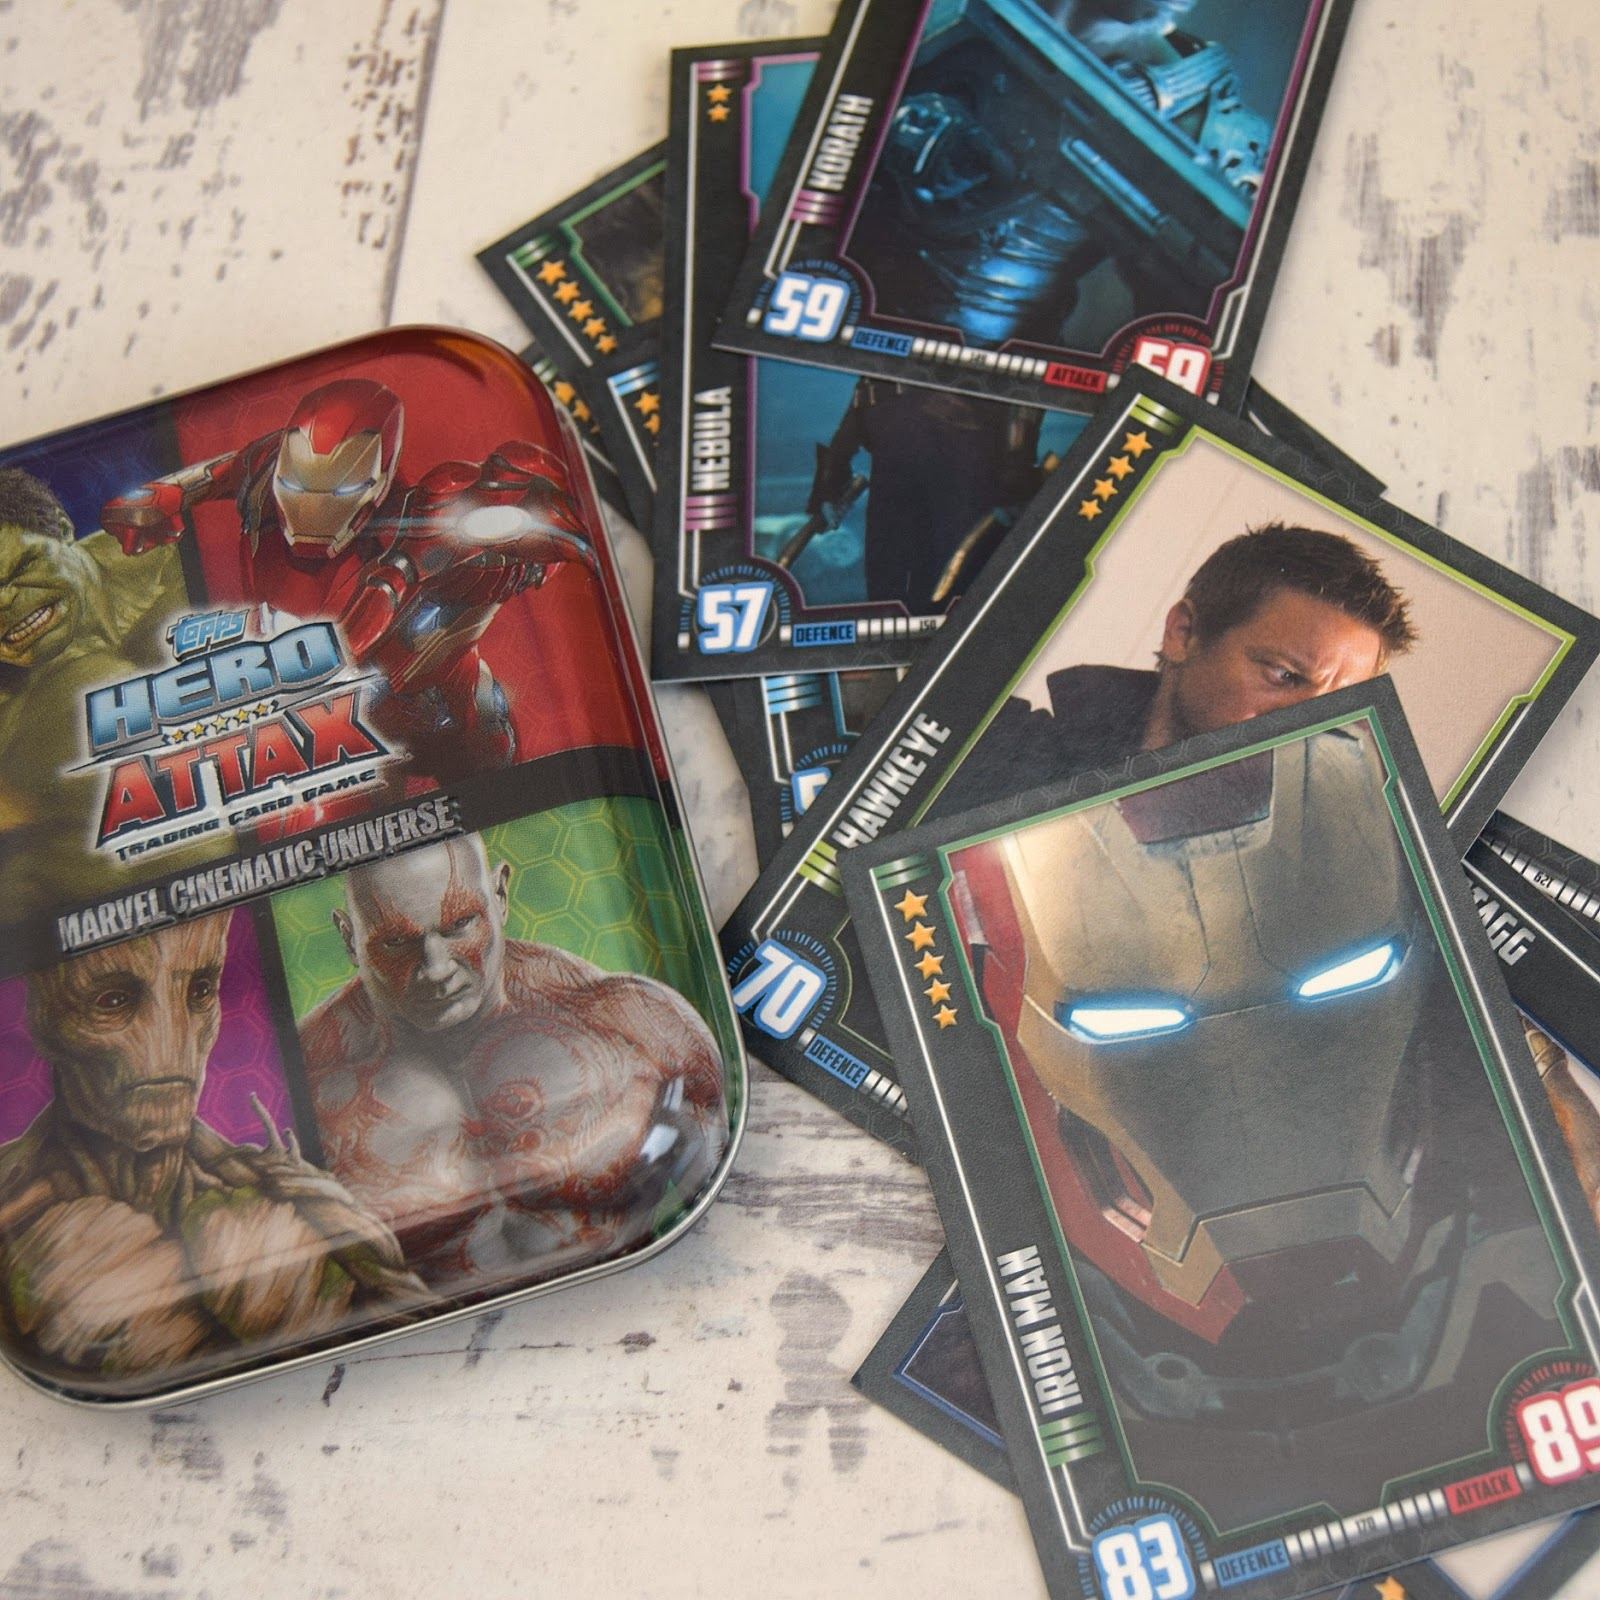 TOPPS HERO ATTAX SERIES 1 AND 2 MOVIE CARDS  ....CHOOSE